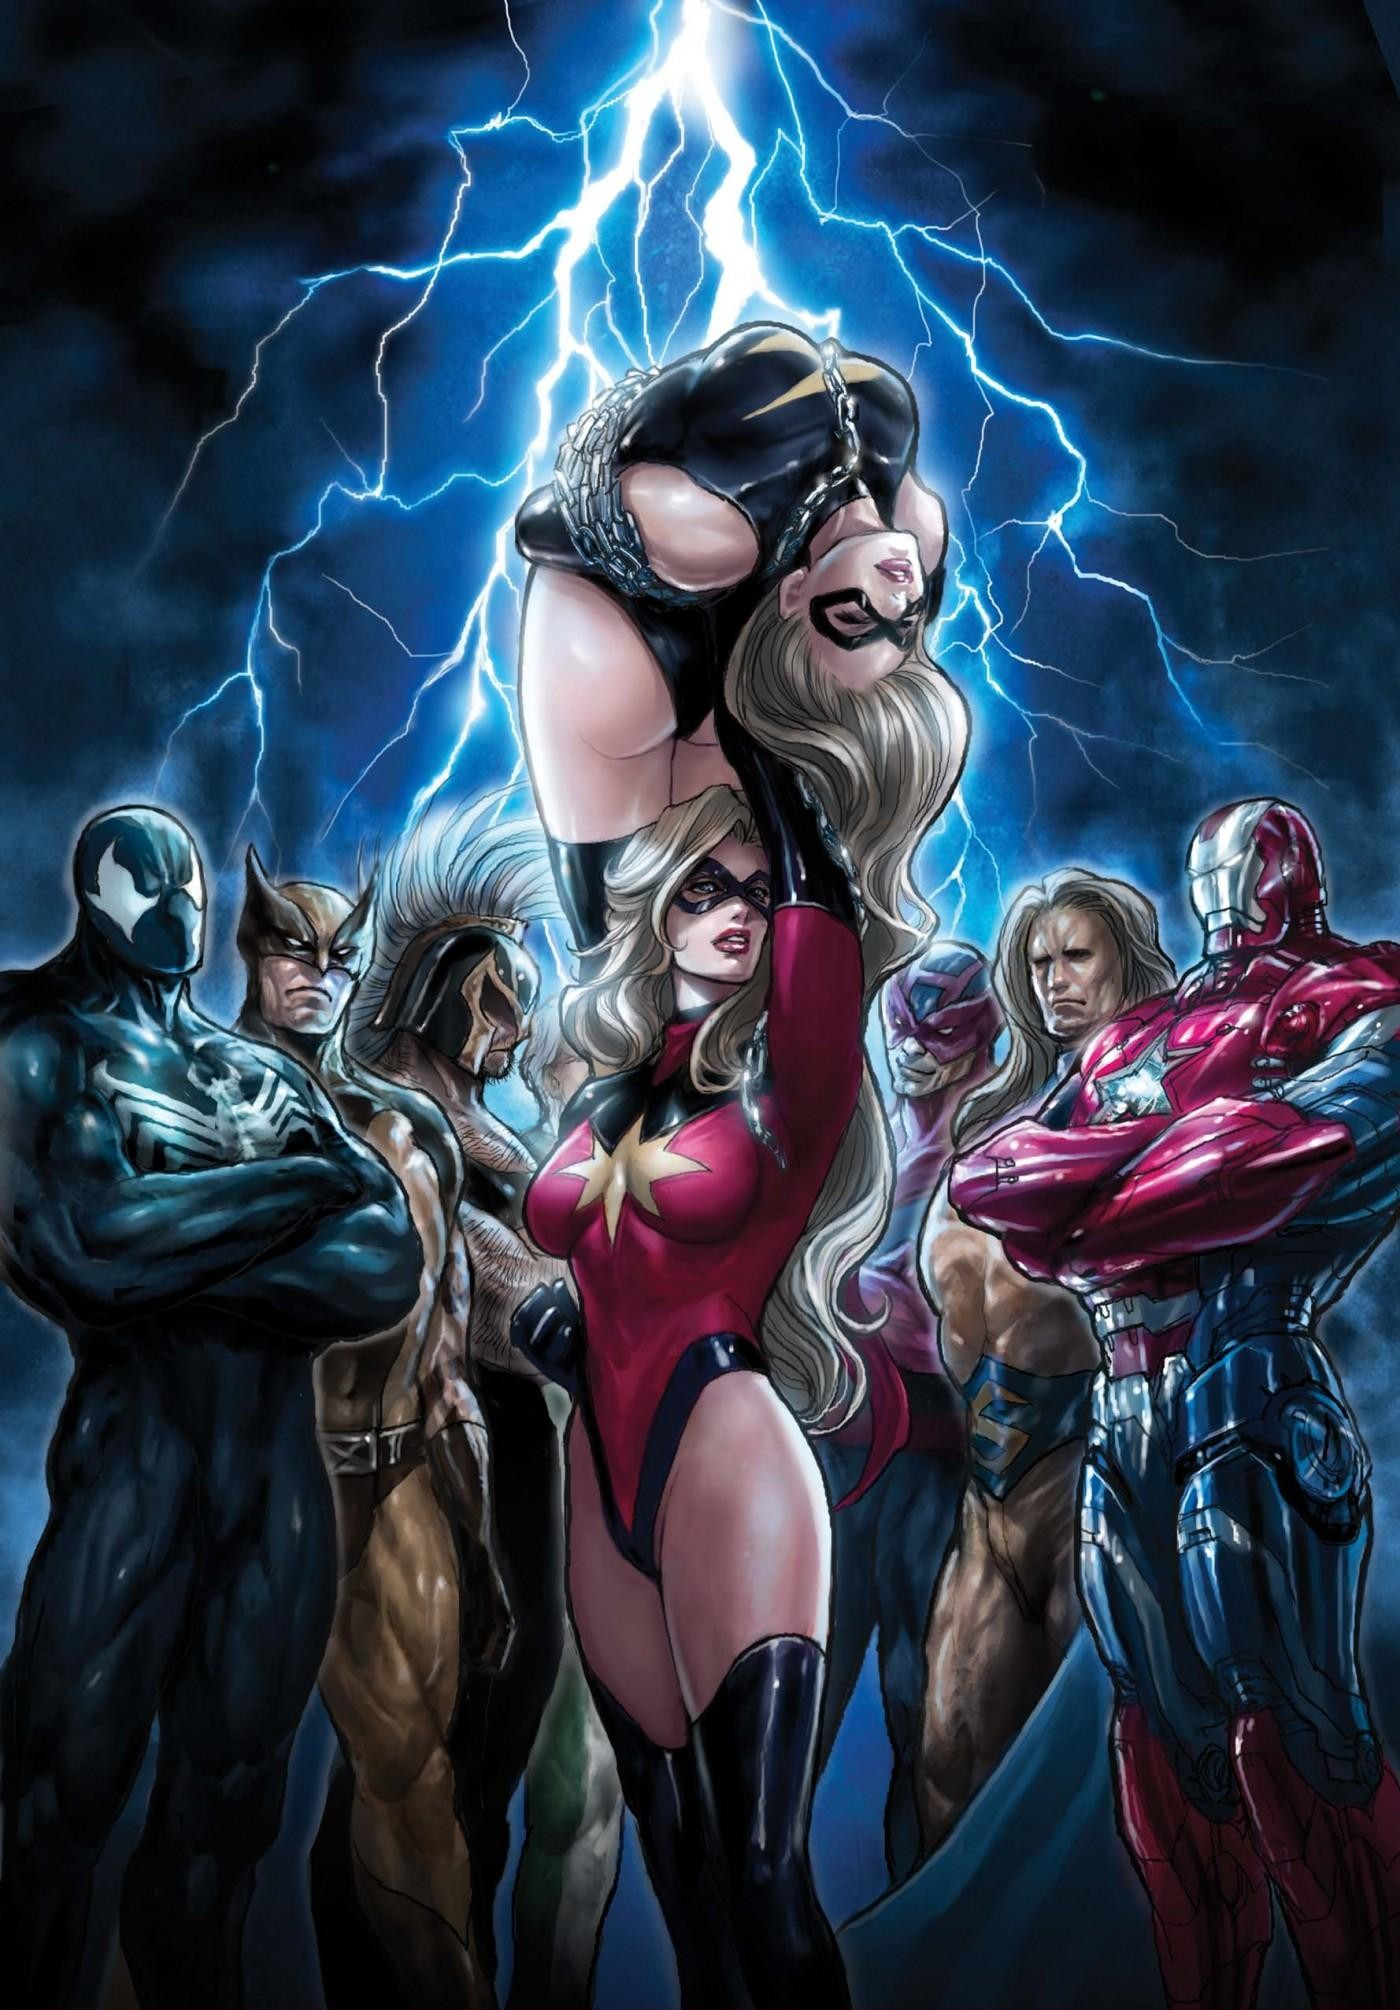 Res: 1400x2010, Images of Ms. Marvel |